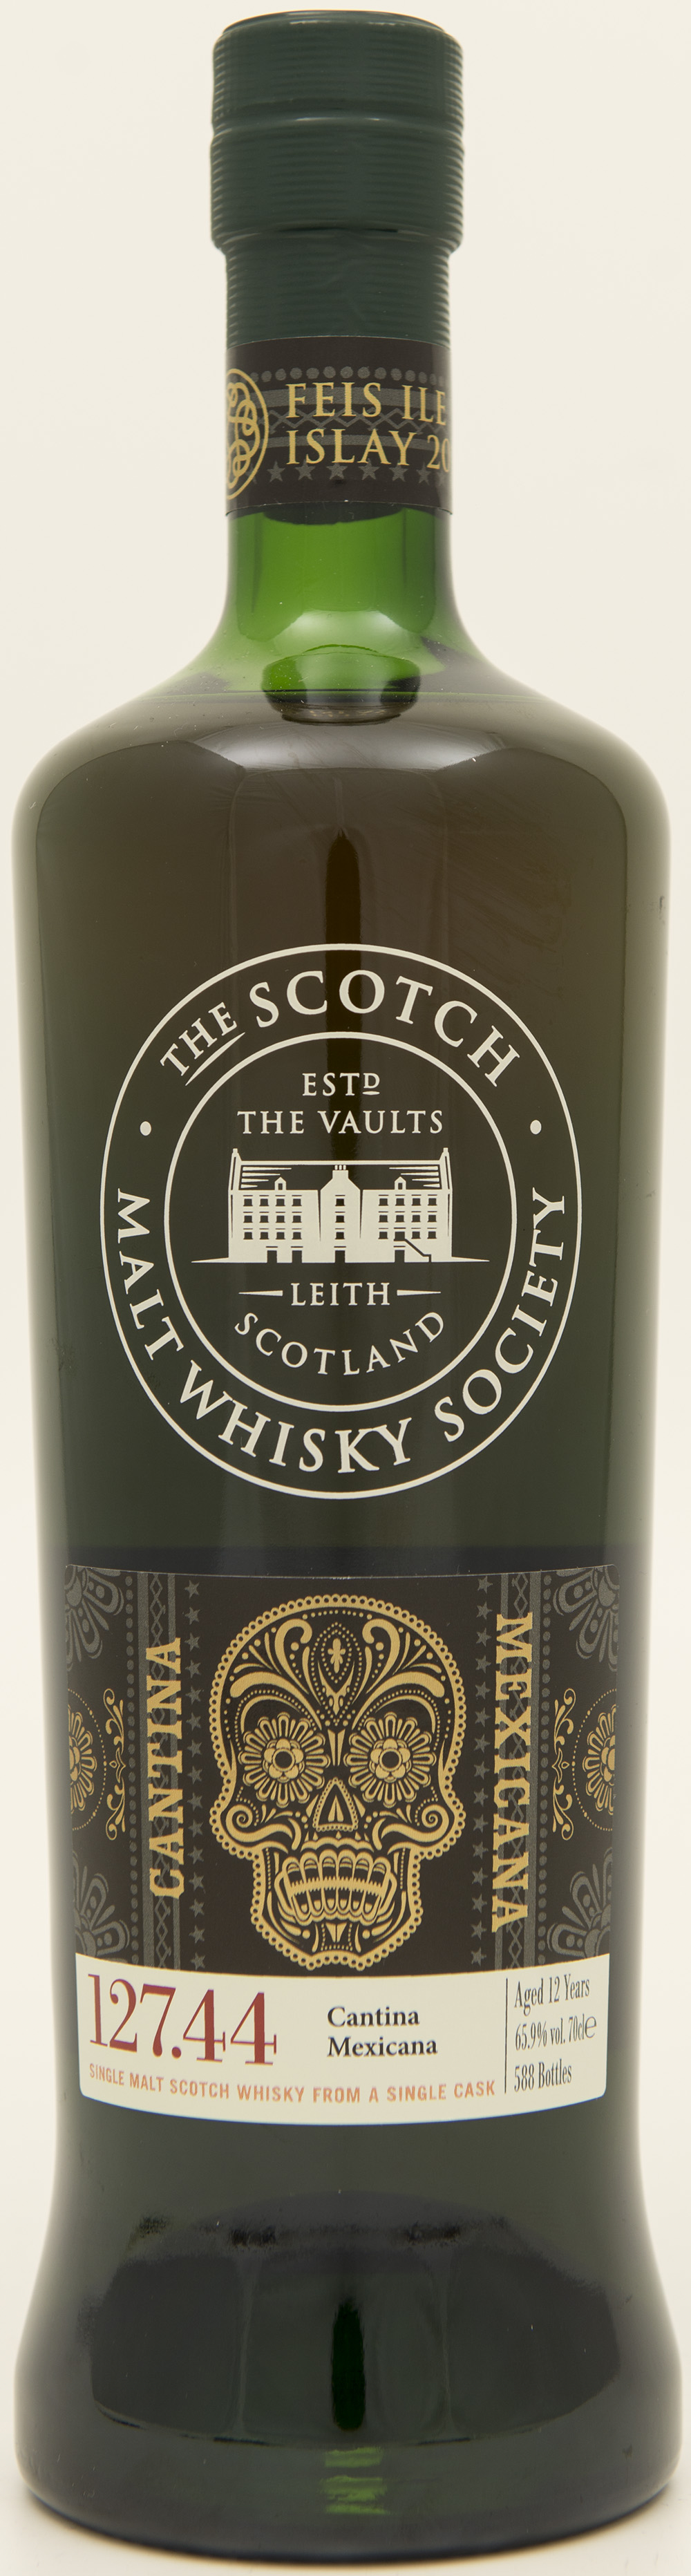 Billede: DSC_1167 - SMWS 127.44 Cantina Mexicana - bottle front.jpg